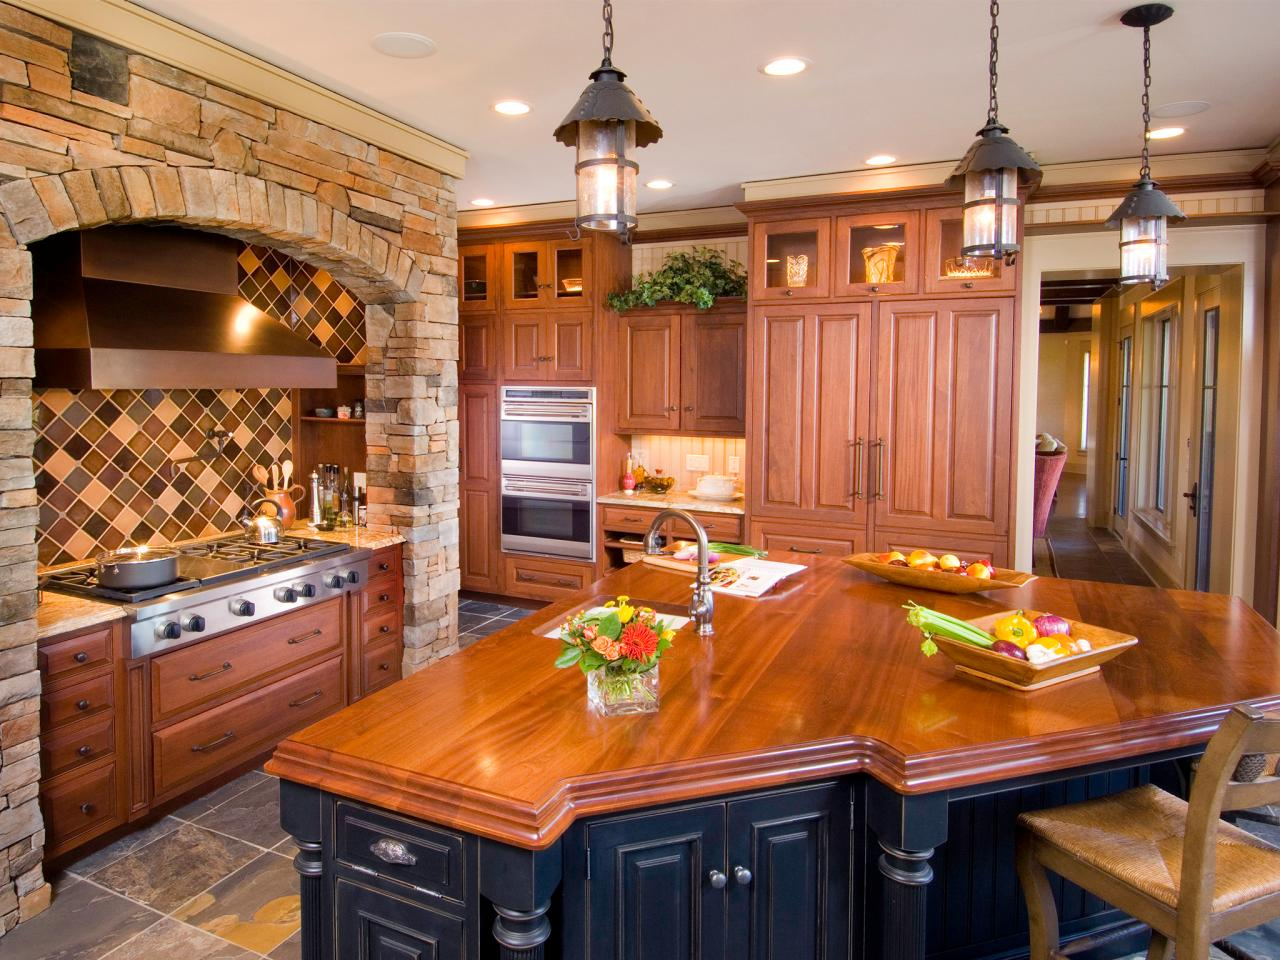 Glamorous and superior kitchen with a polished wooden countertop